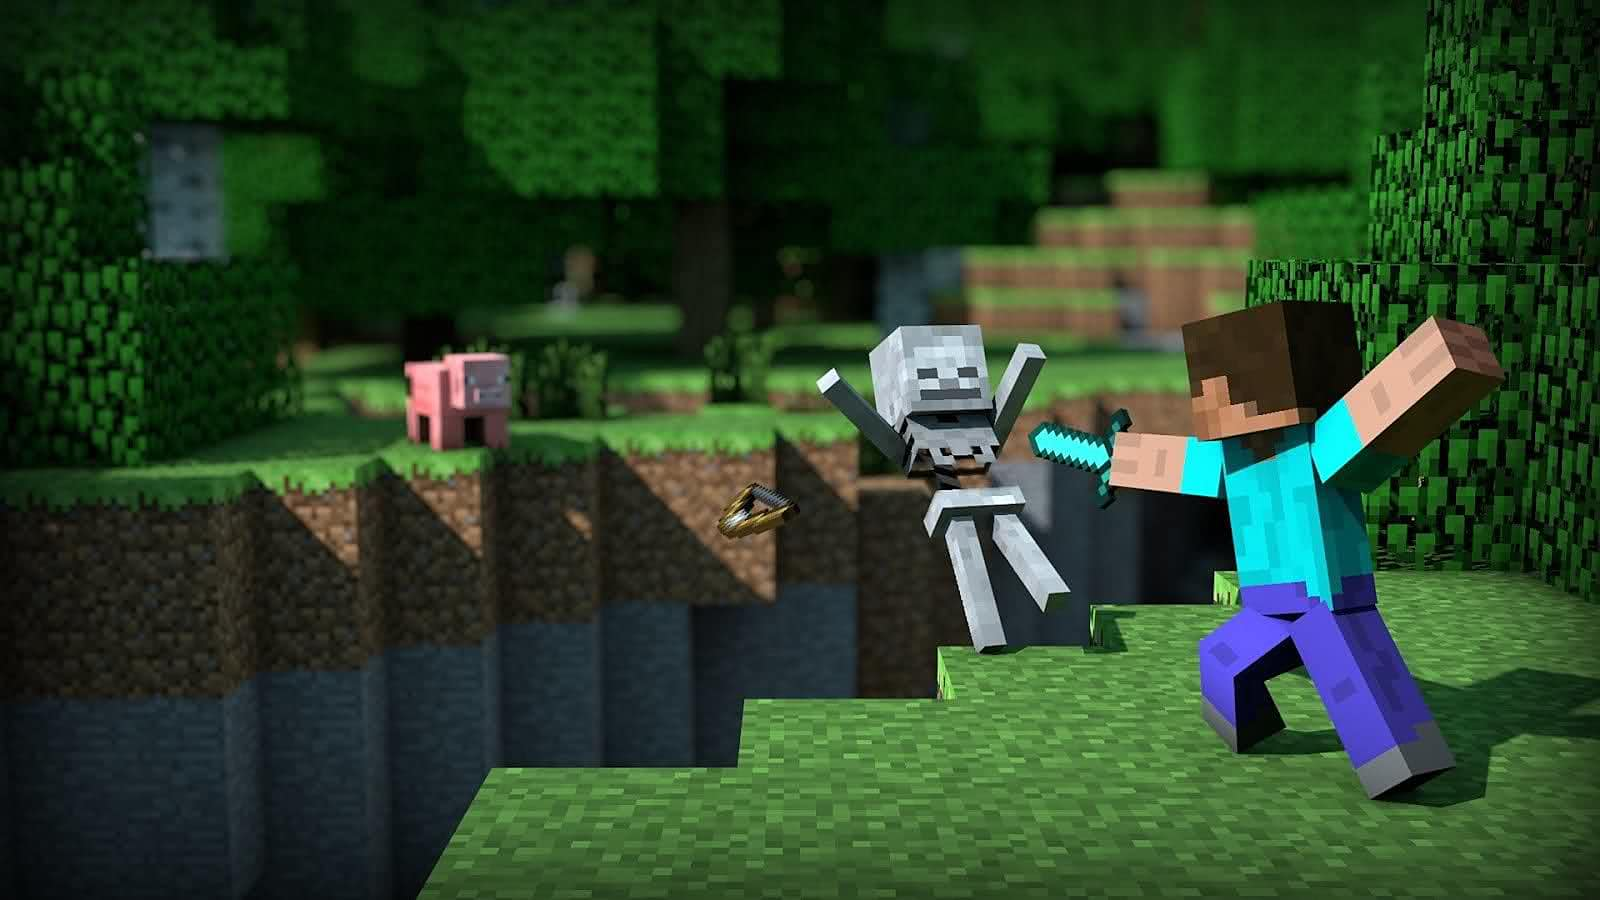 Best OpenWorld Games For IOS - Minecraft defence spiele